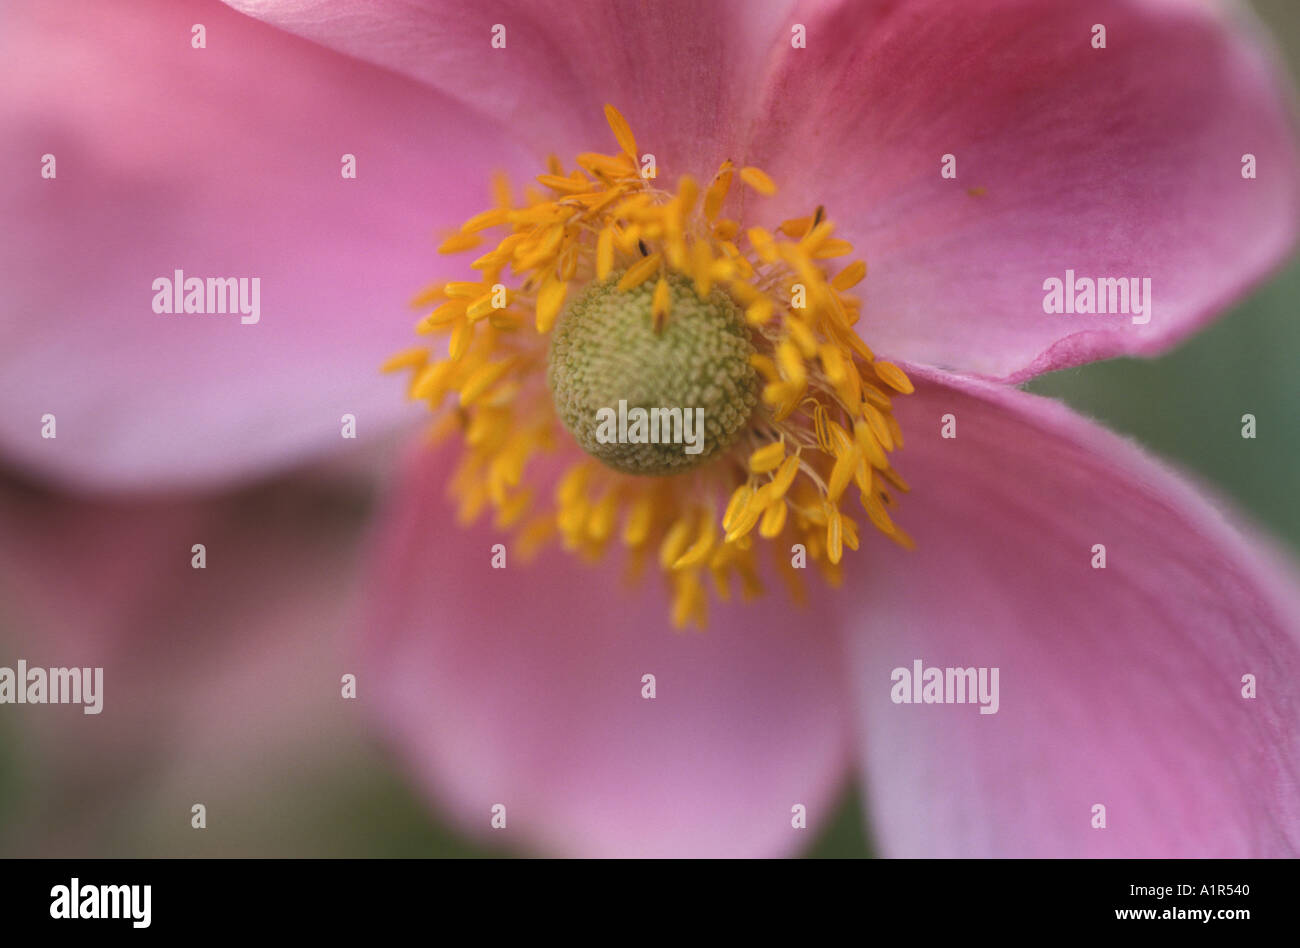 Pink blossom, close-up - Stock Image